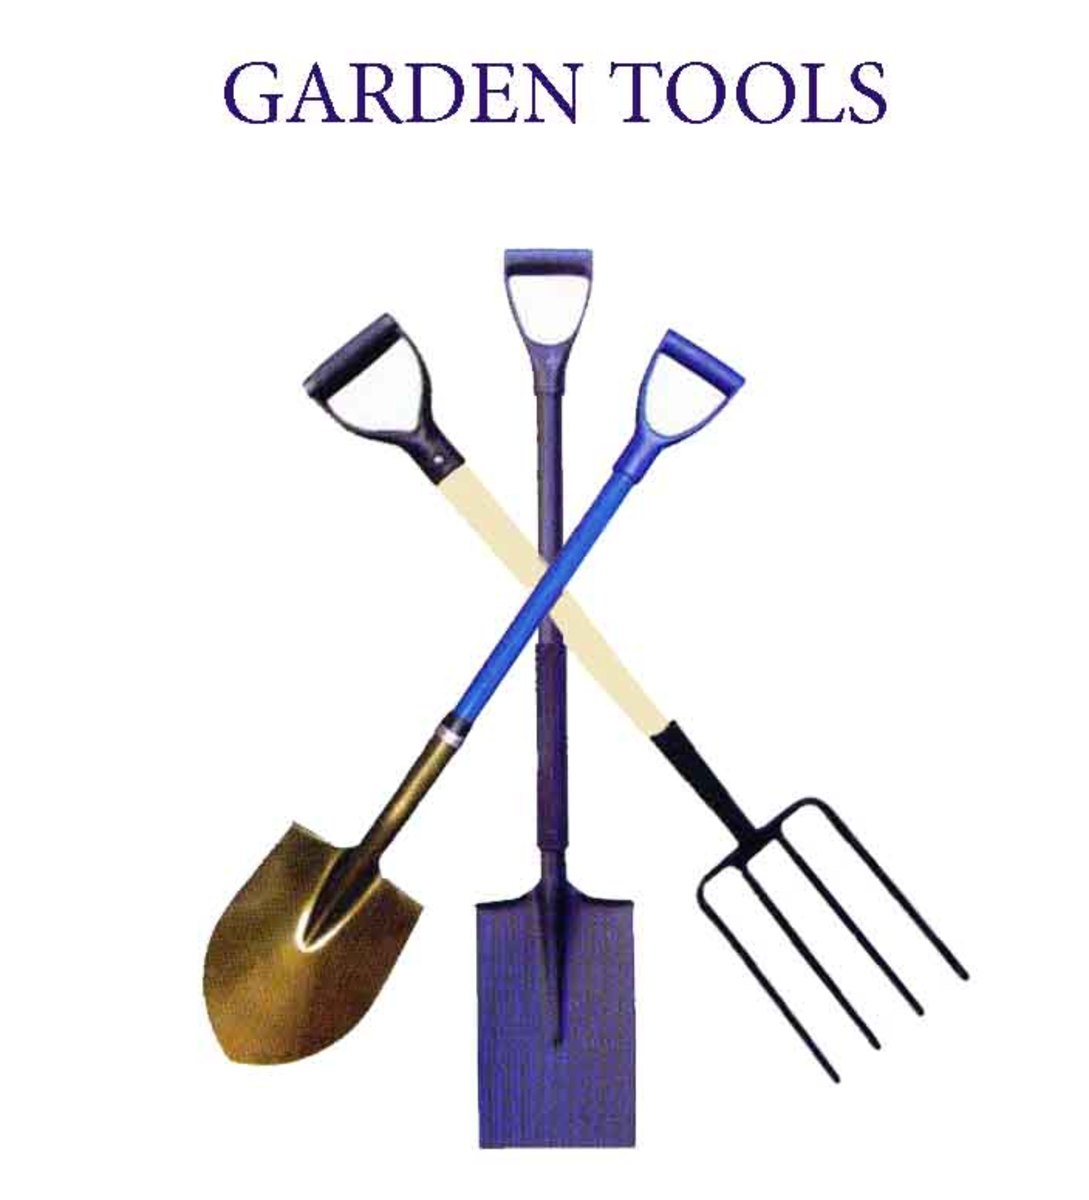 The Most Useful Tools In The Shed: What Tools To Own And How To Properly Clean and Store Them.